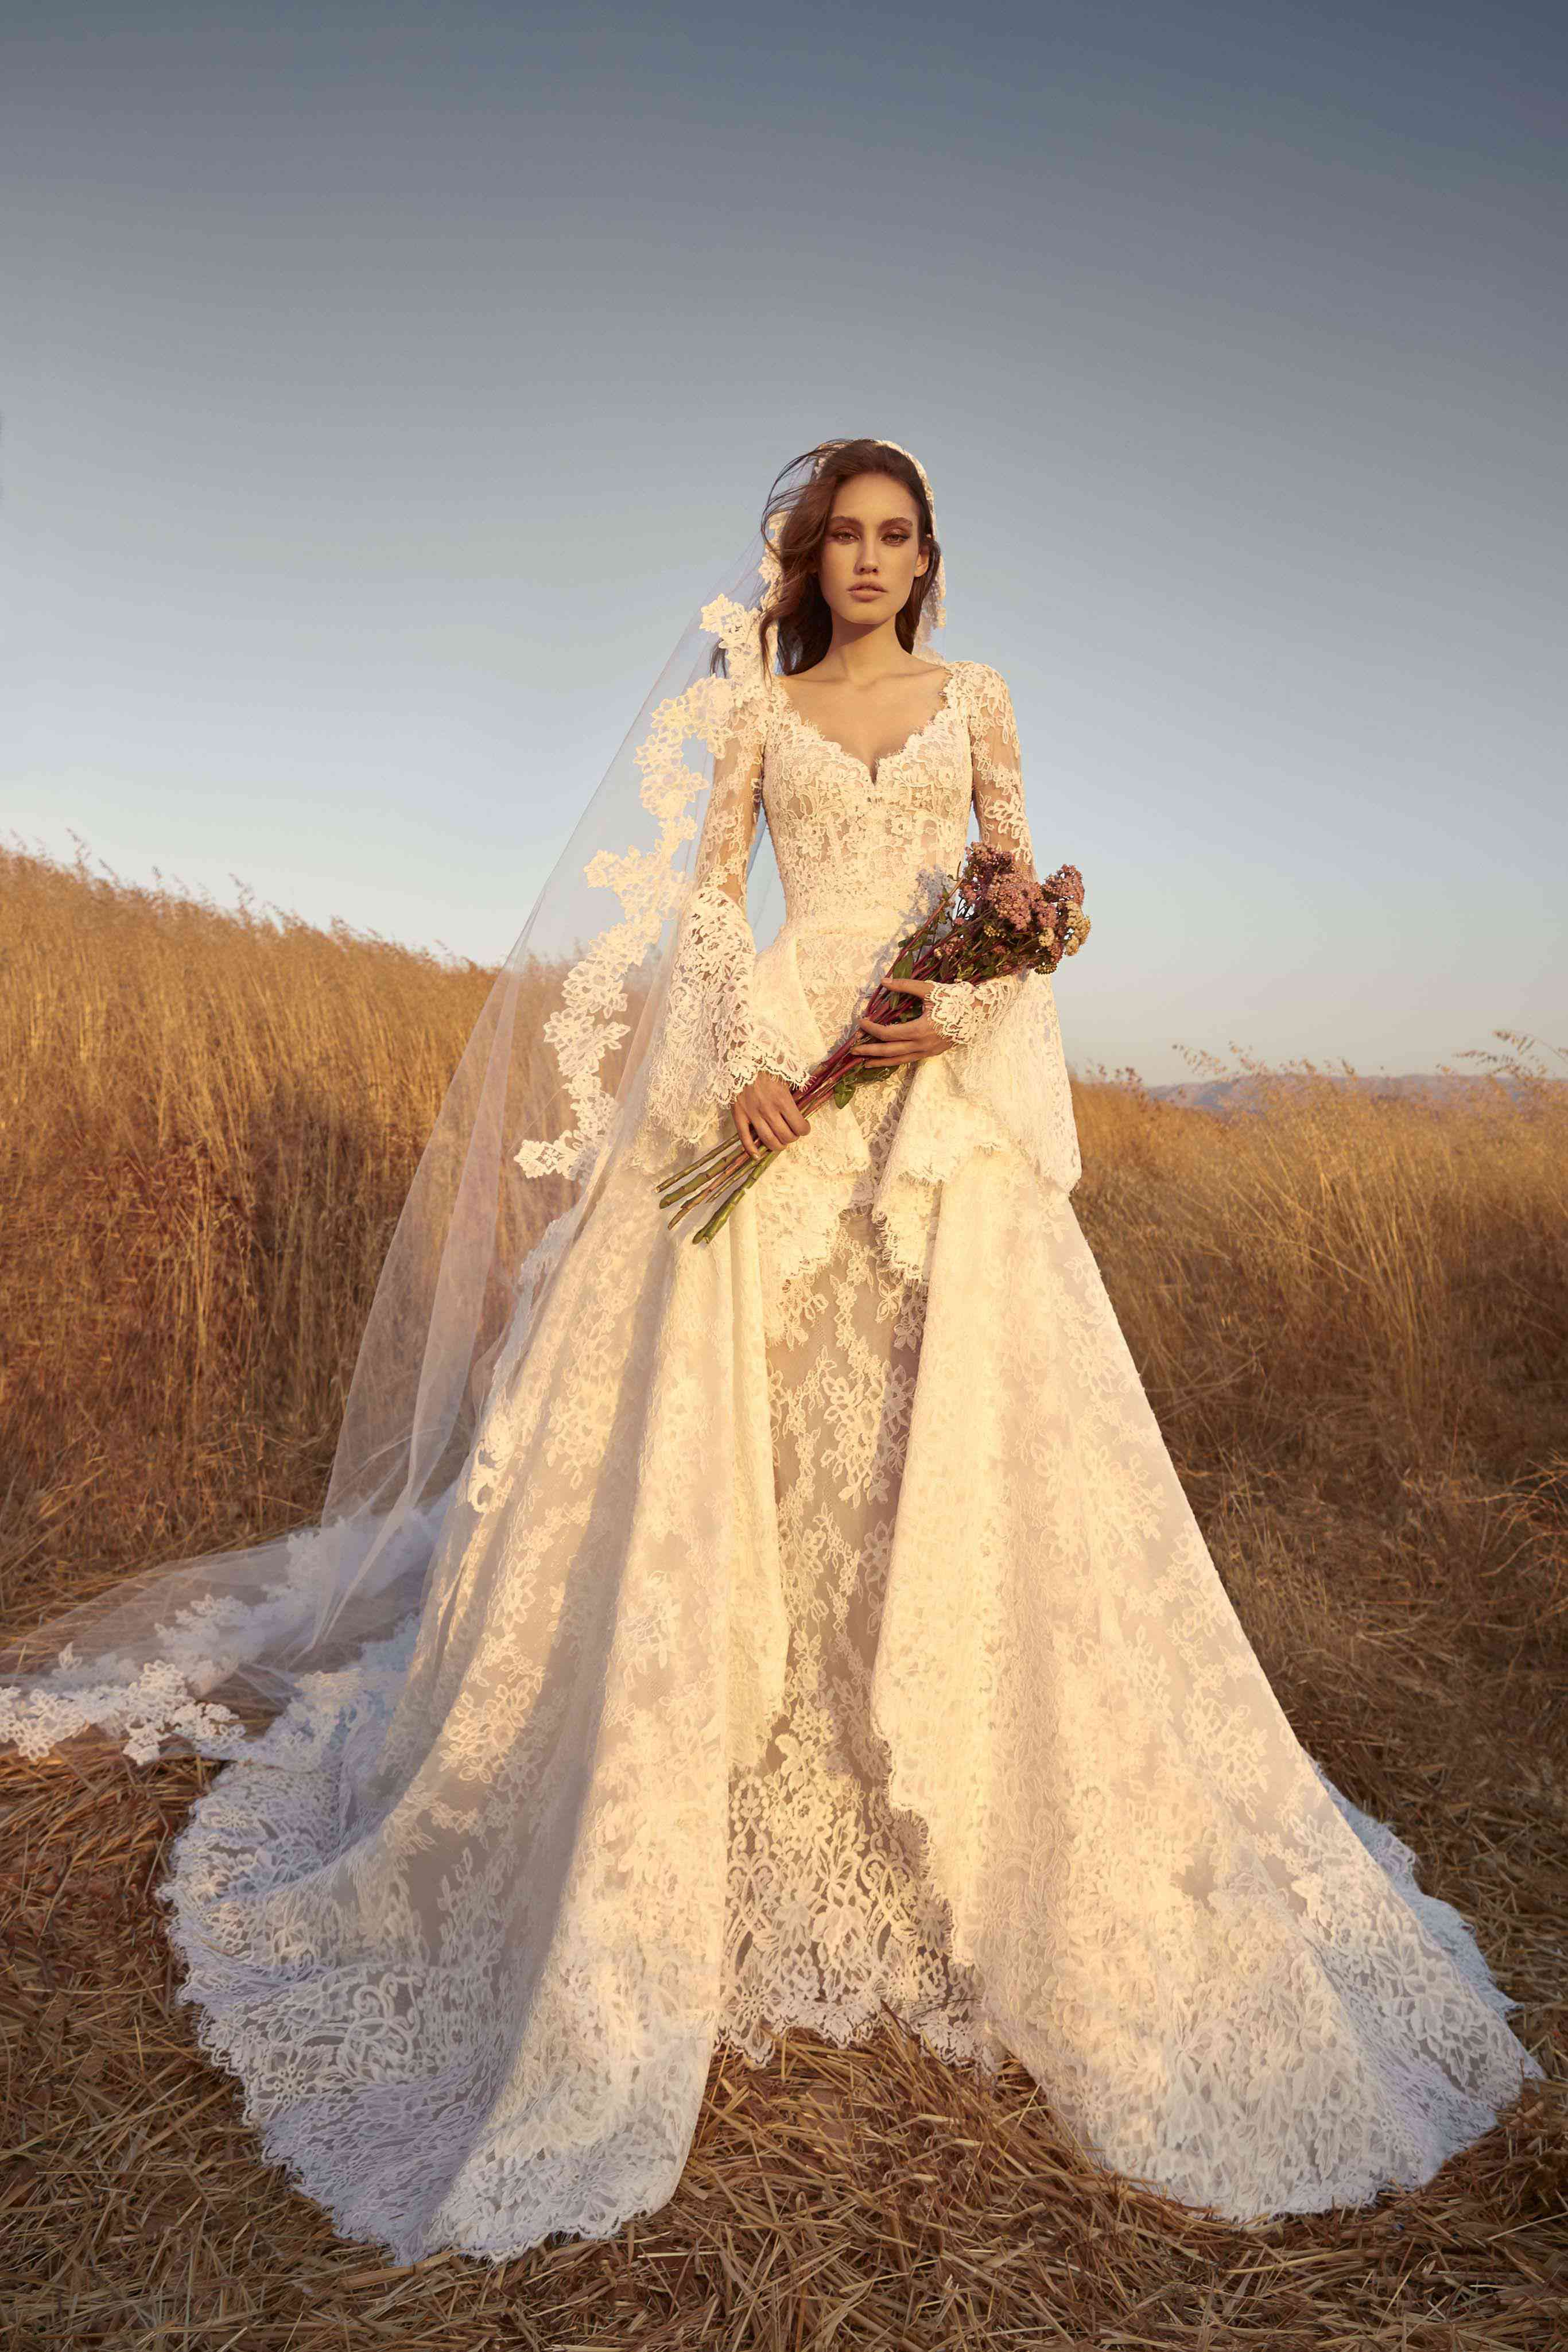 Model in long-sleeve allover lace dress with bell sleeves and a dramatic lace overskirt with a matching veil